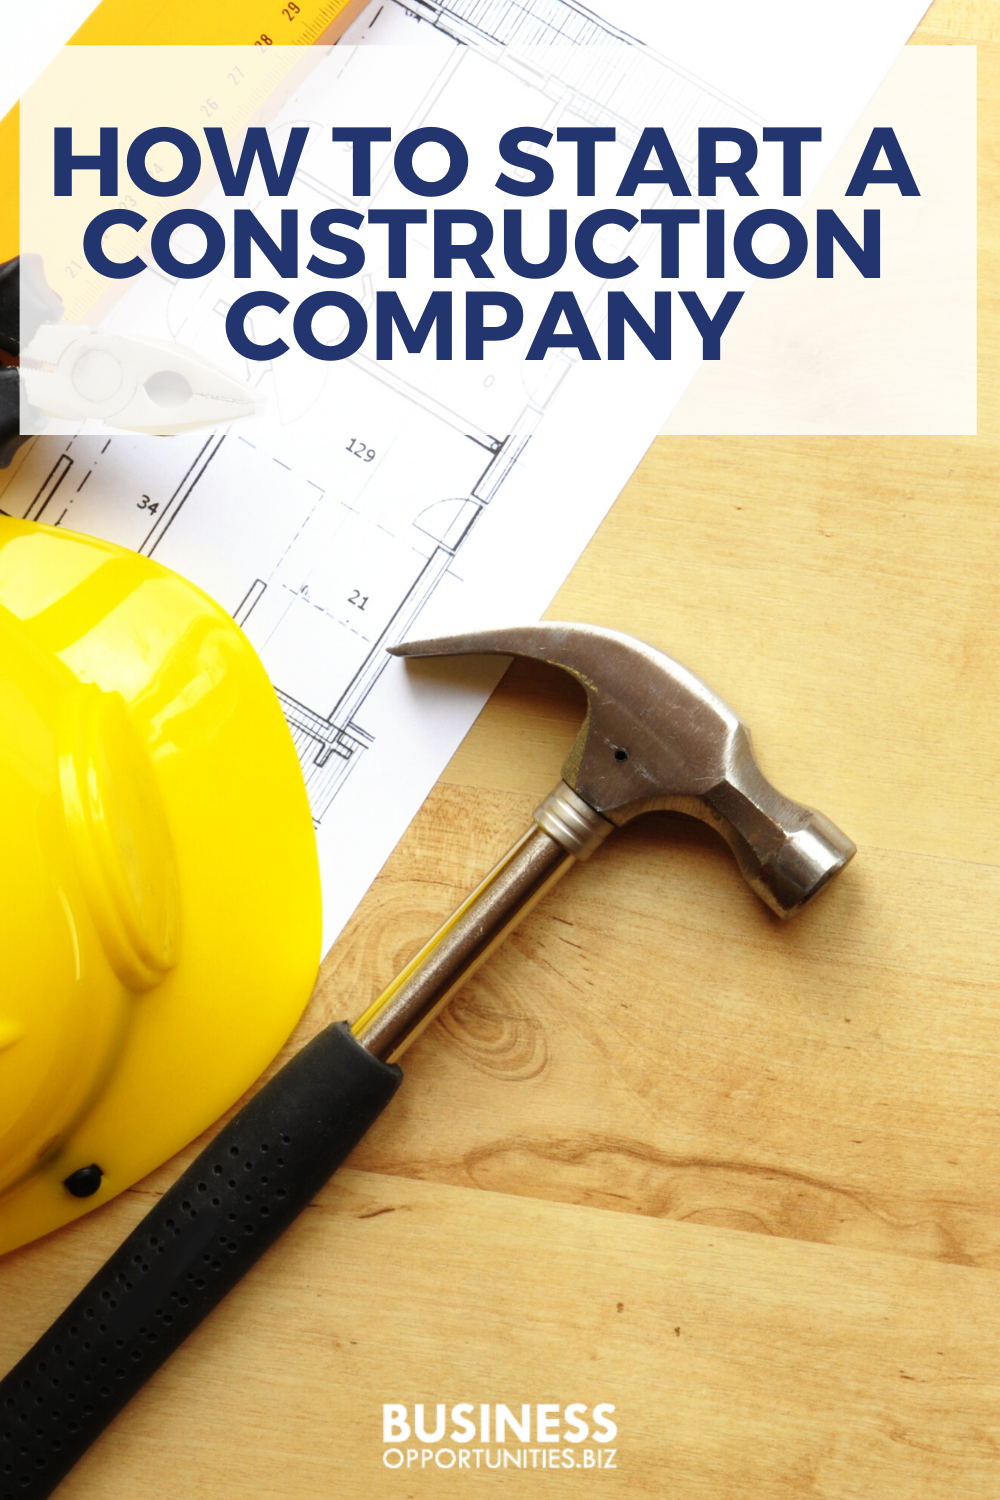 How To Start A Construction Company And Be A Successful Business Construction Company Success Business Construction Business